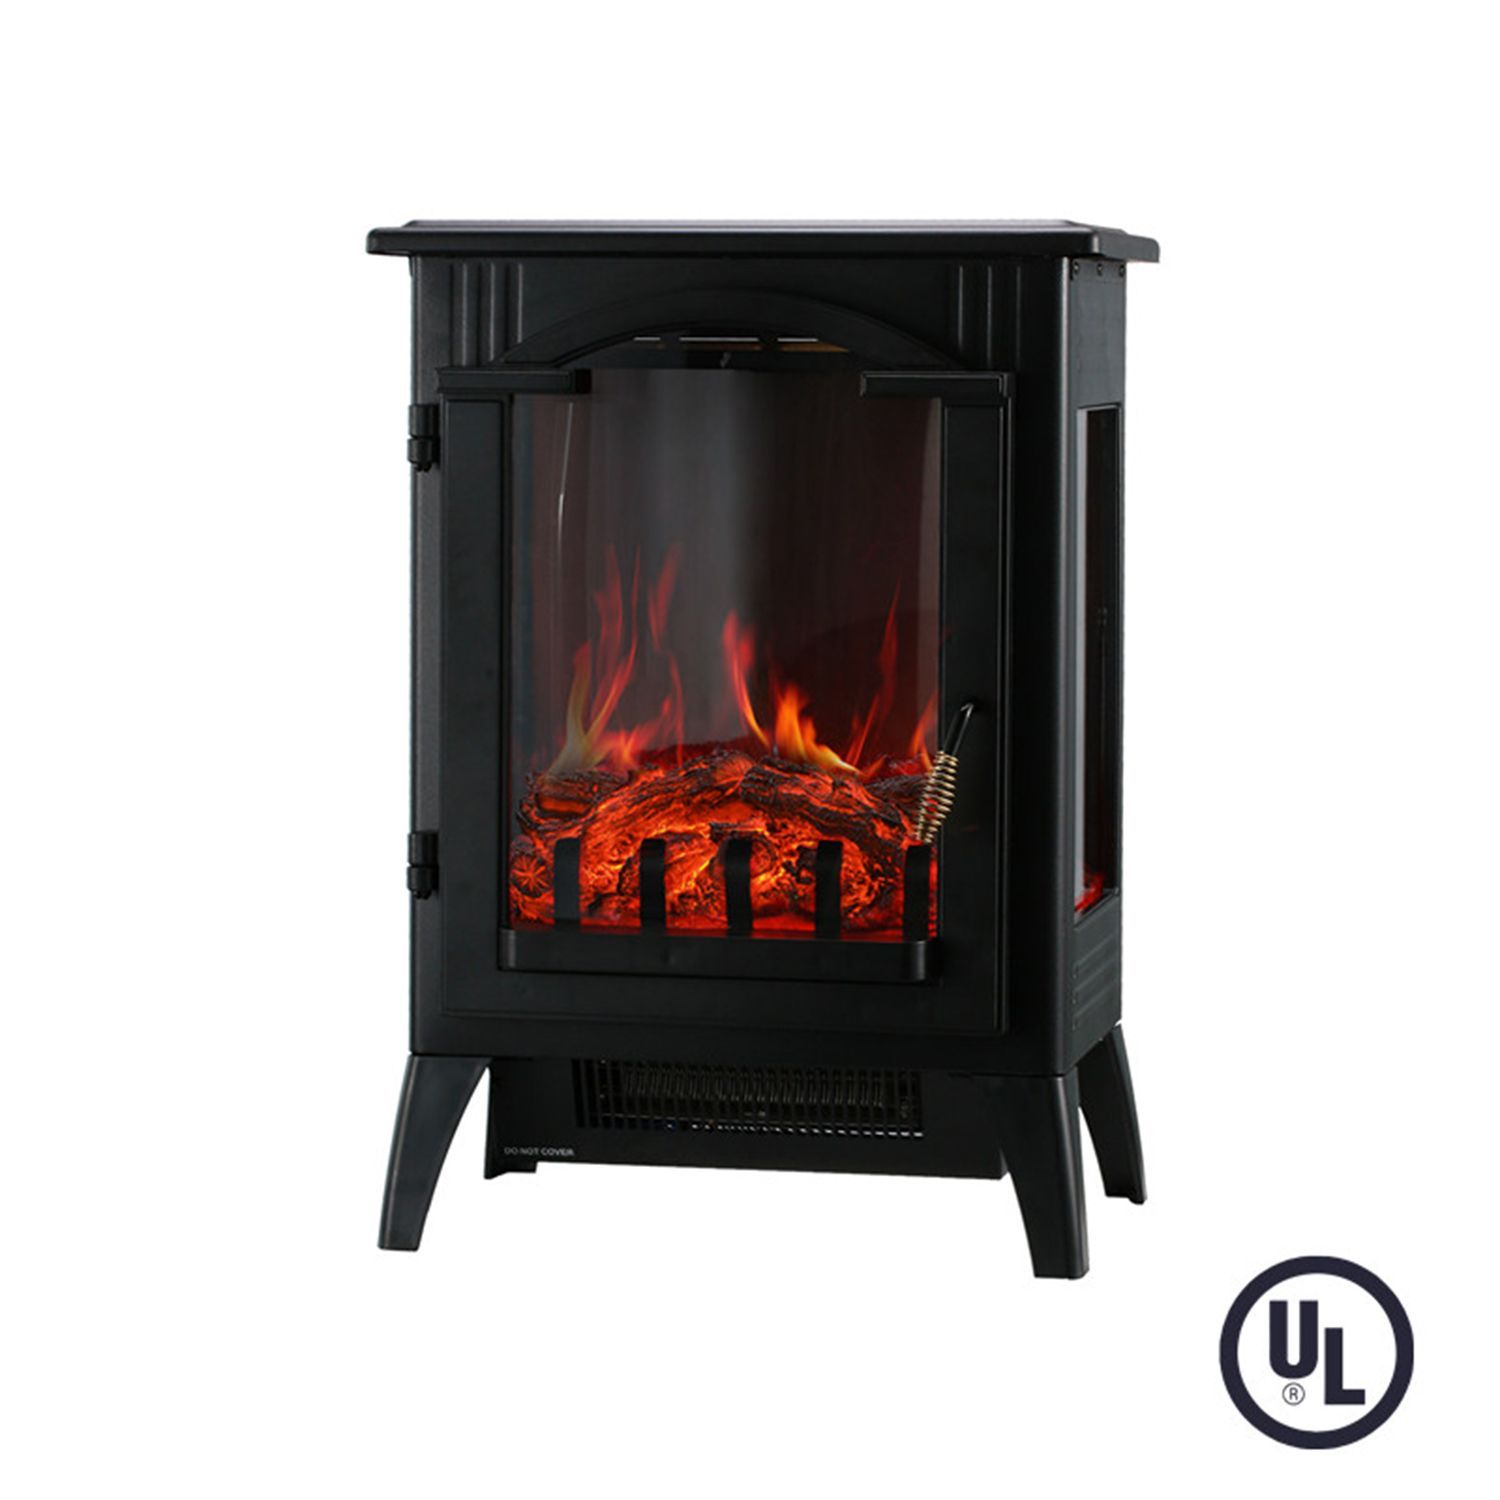 Portable Indoor Home Compact Electric Wood Stove Fireplace Heater With Thermostat For Office Electric Wood Stove Freestanding Fireplace Wood Stove Fireplace